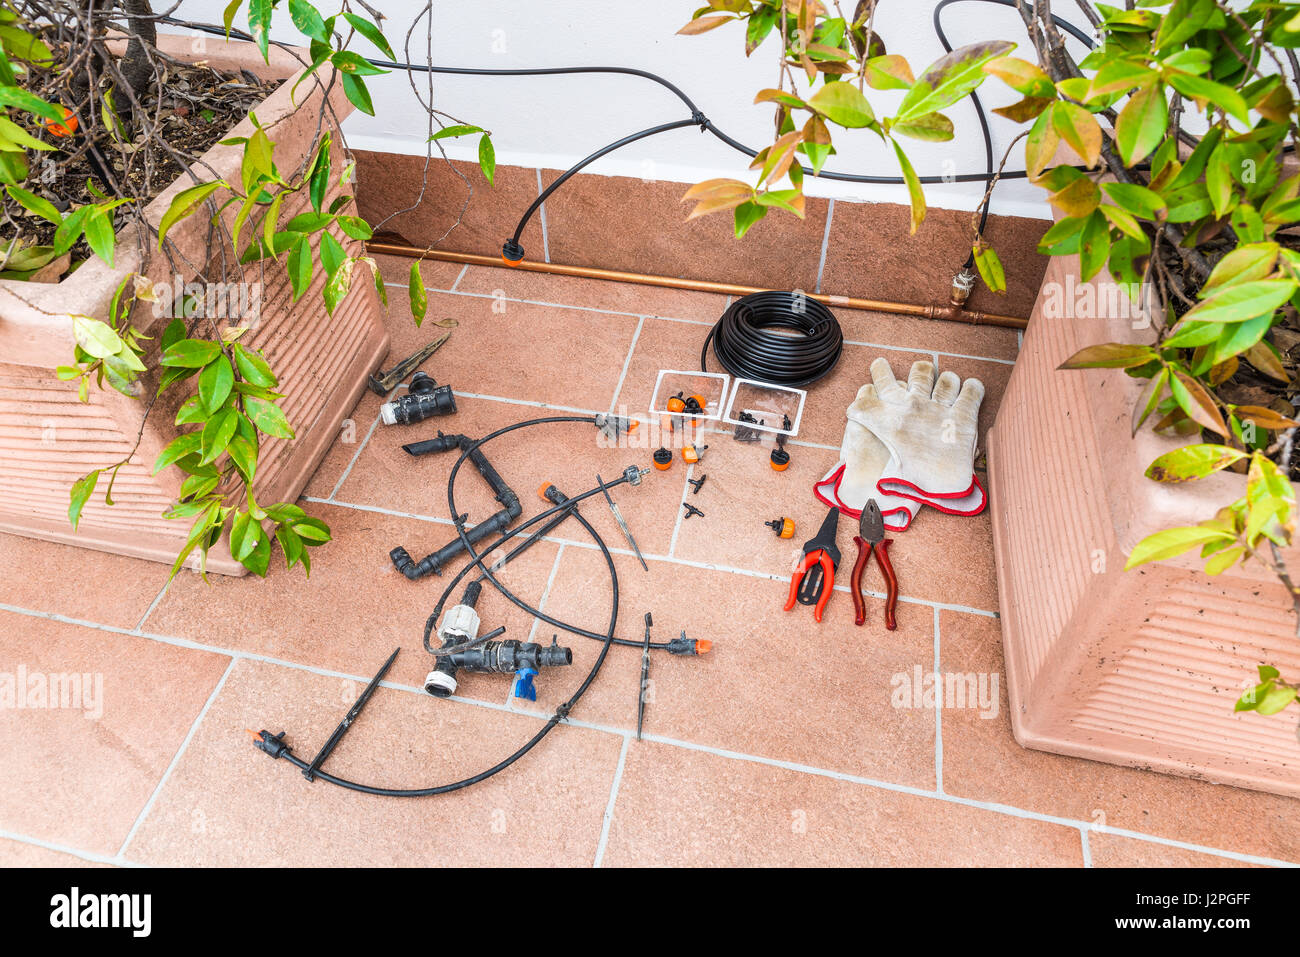 Automatic watering system for potted plants - Luxurious Copper Drip Irrigation System With Copper Pipes Micro Irrigation System For Pot Plants